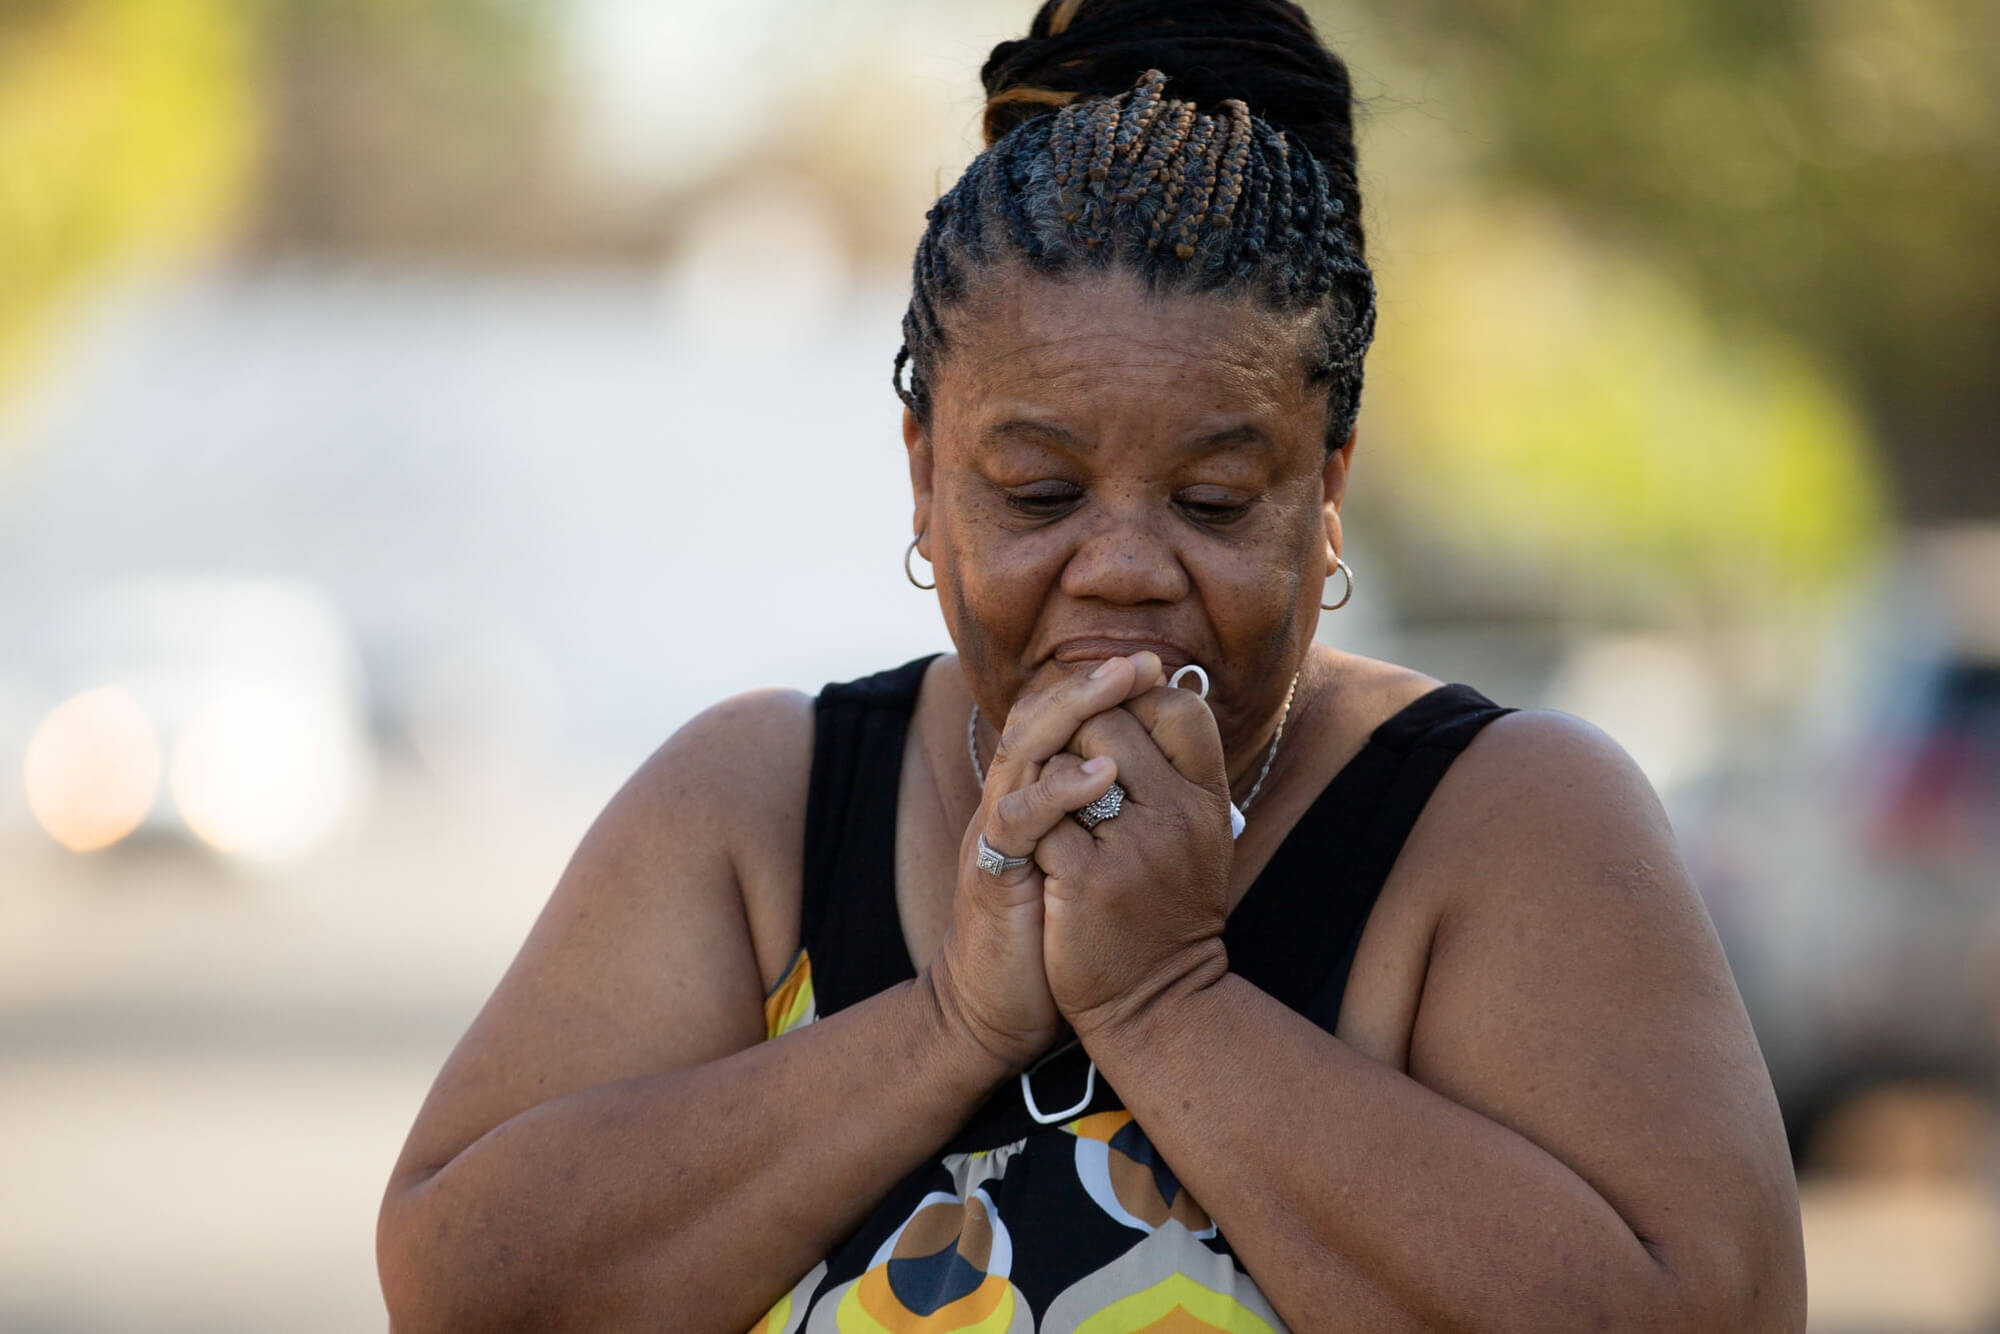 Deborah Bell-Holt stands outside of her home in Jefferson Park near Downtown Los Angeles on Jan. 21, 2021. Having fallen deeper into utilities debt as she took in family and friends during the pandemic, Bell-Holt fears her water will be shut off.